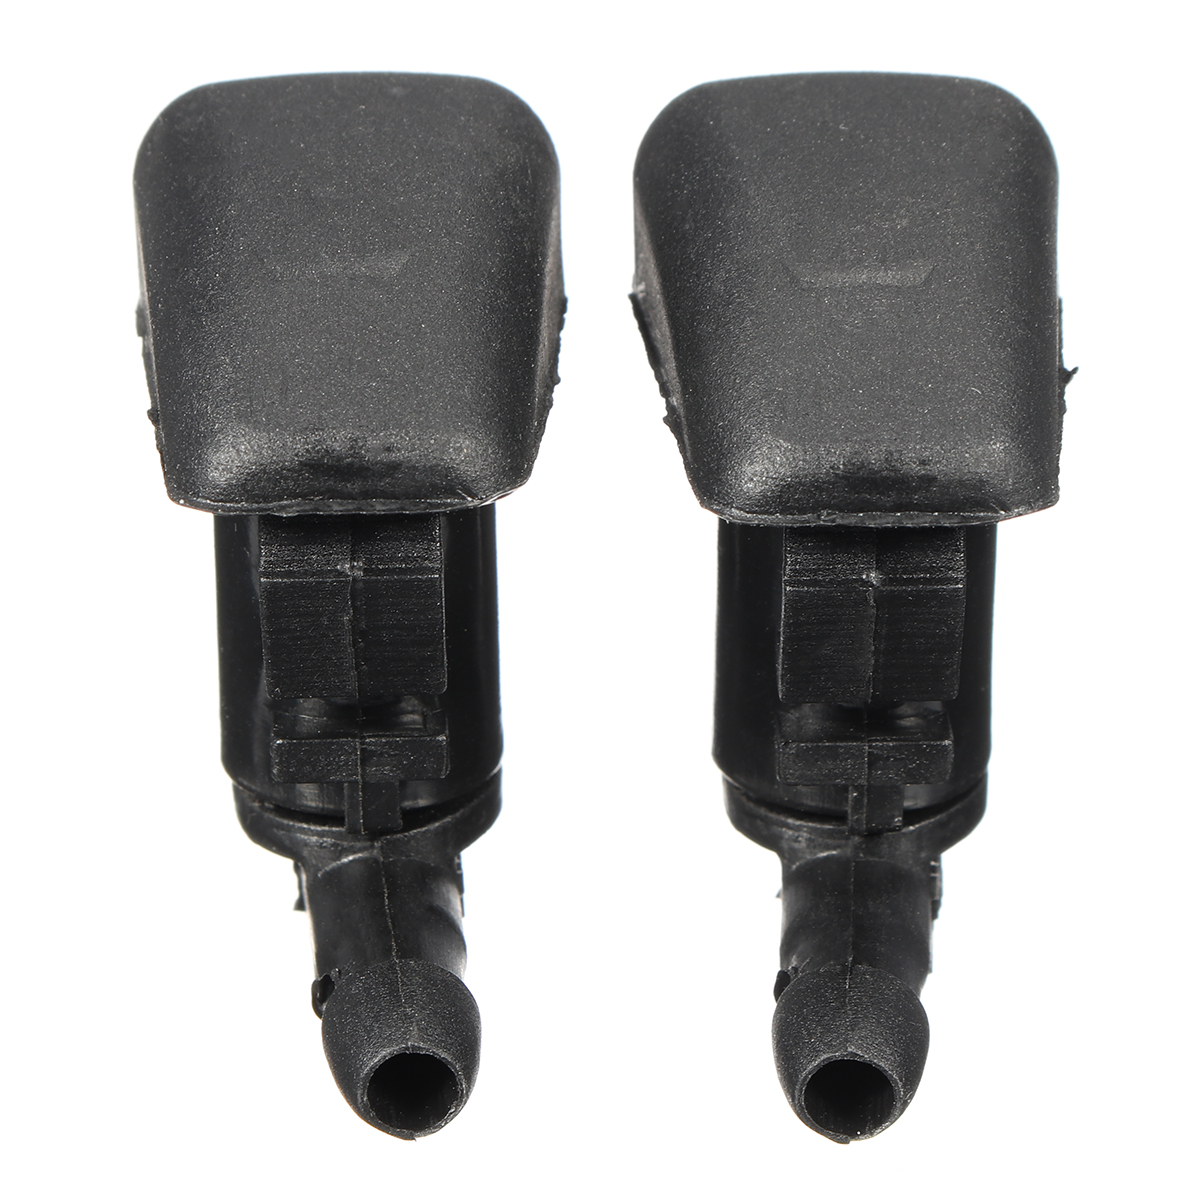 2Pcs Front Windshield Wiper Washer Sprayer Nozzles For